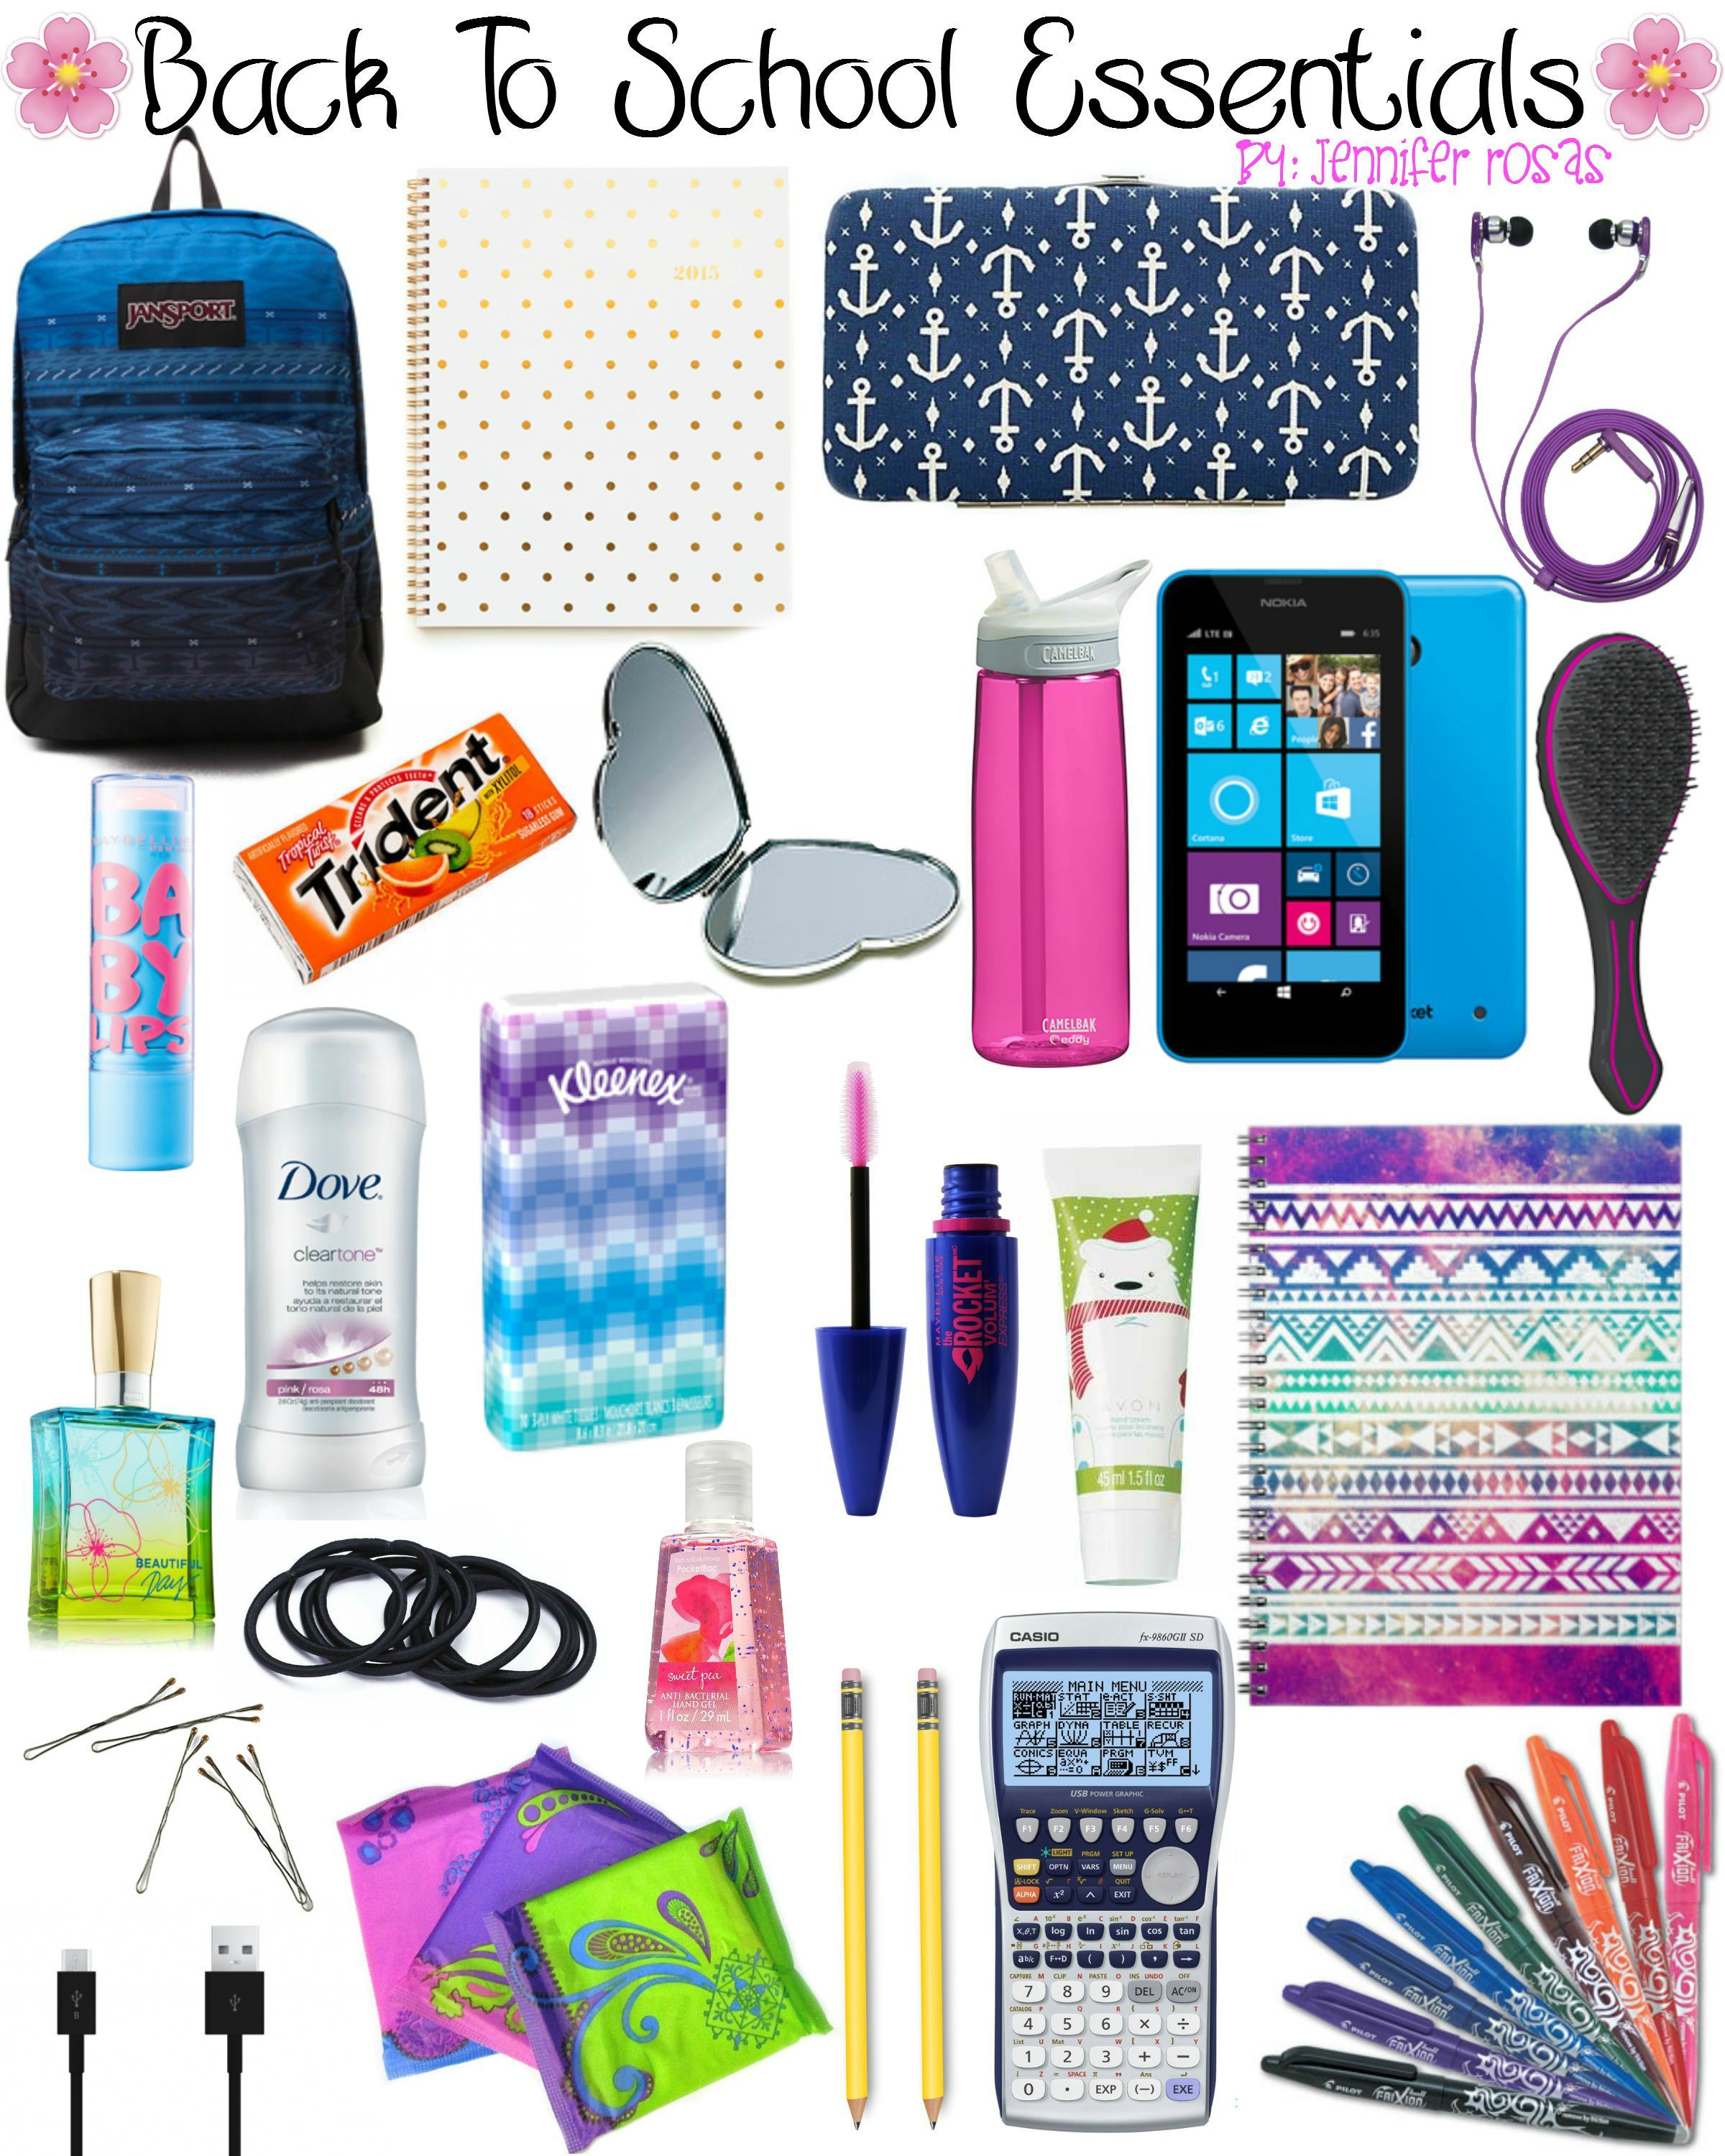 The back-to-school collection features novelty shirts for teachers, girls, and boys. Also backpacks, socks, and other grade and high school essentials such as .